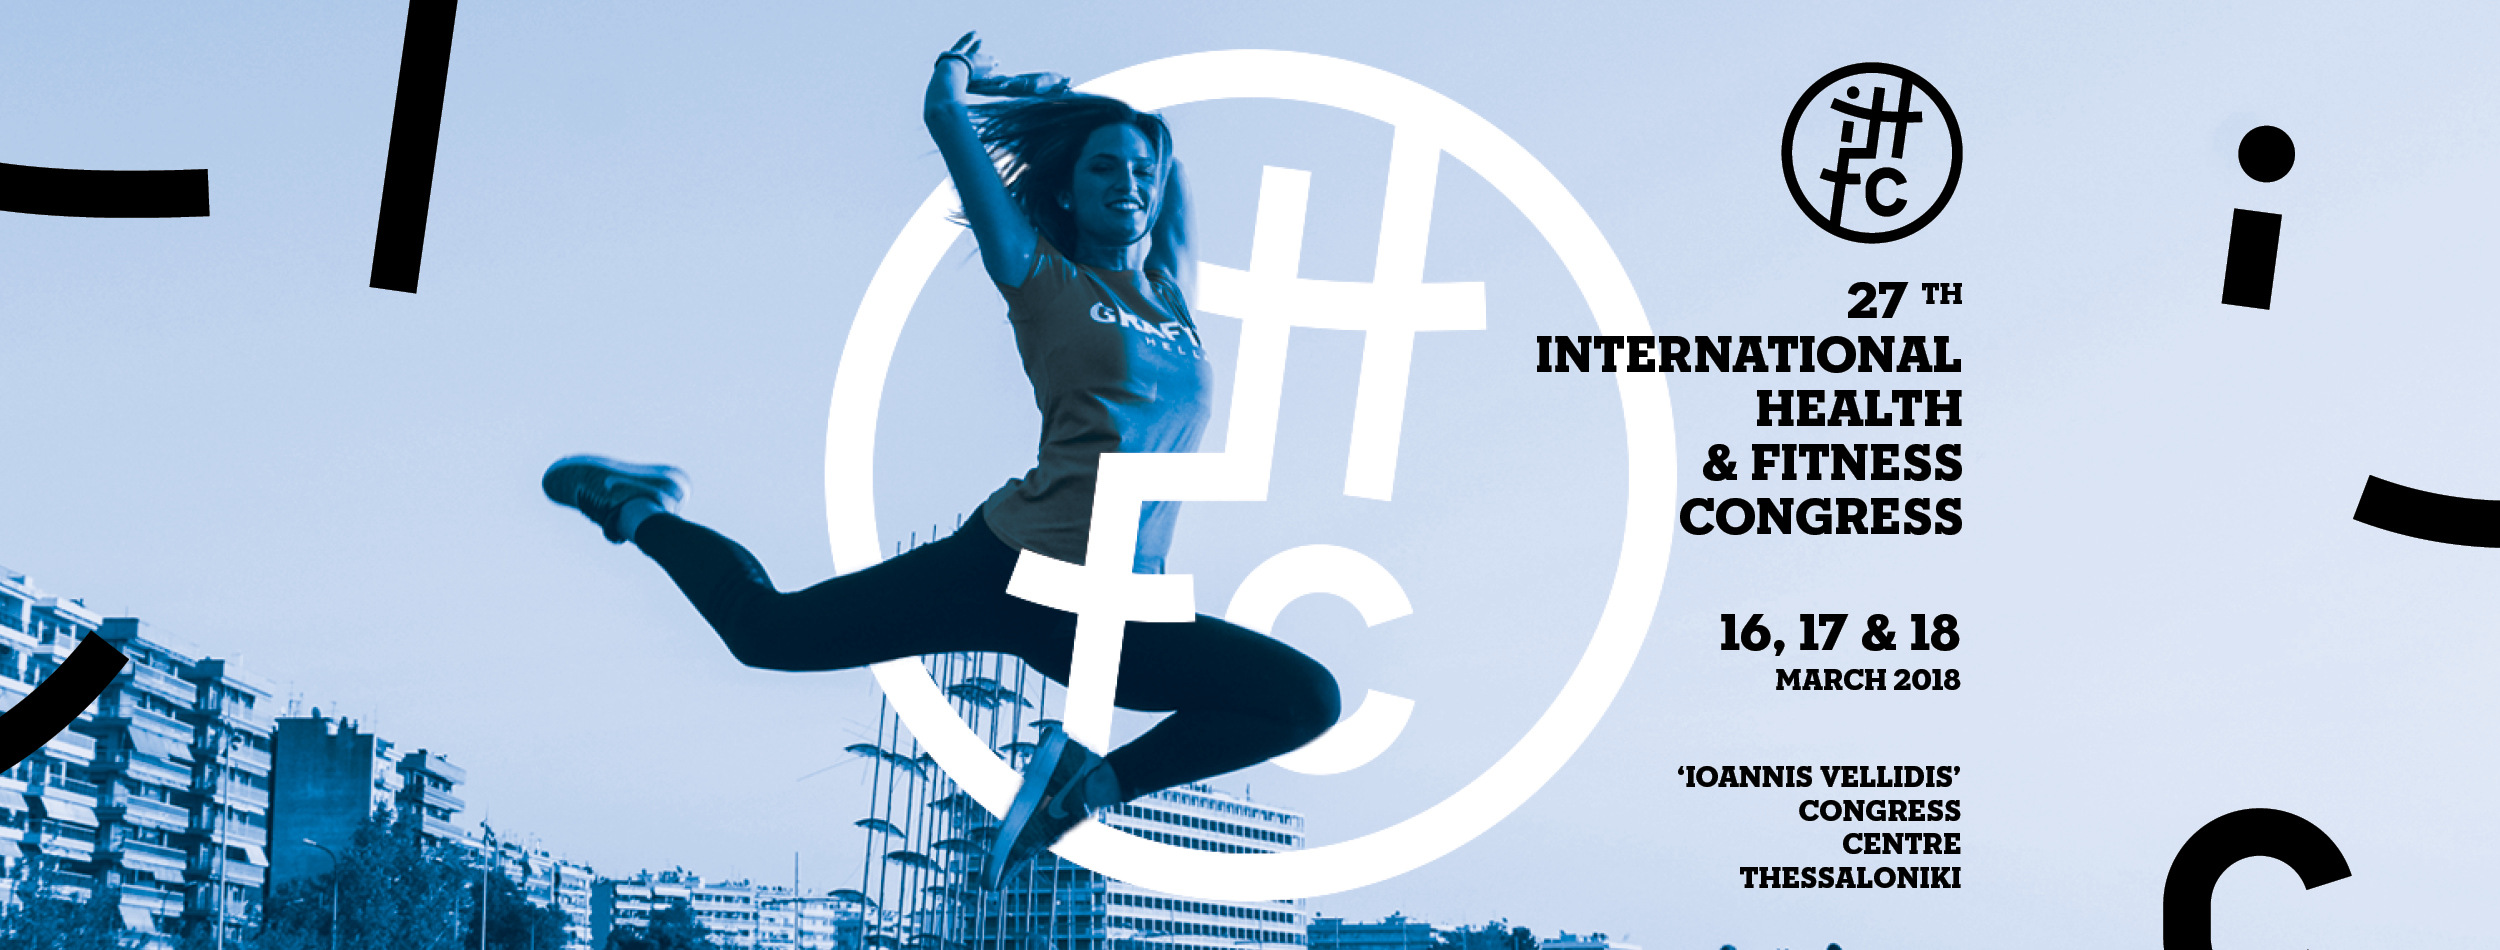 27th International Health & Fitness Congress by Grafts Hellas banner